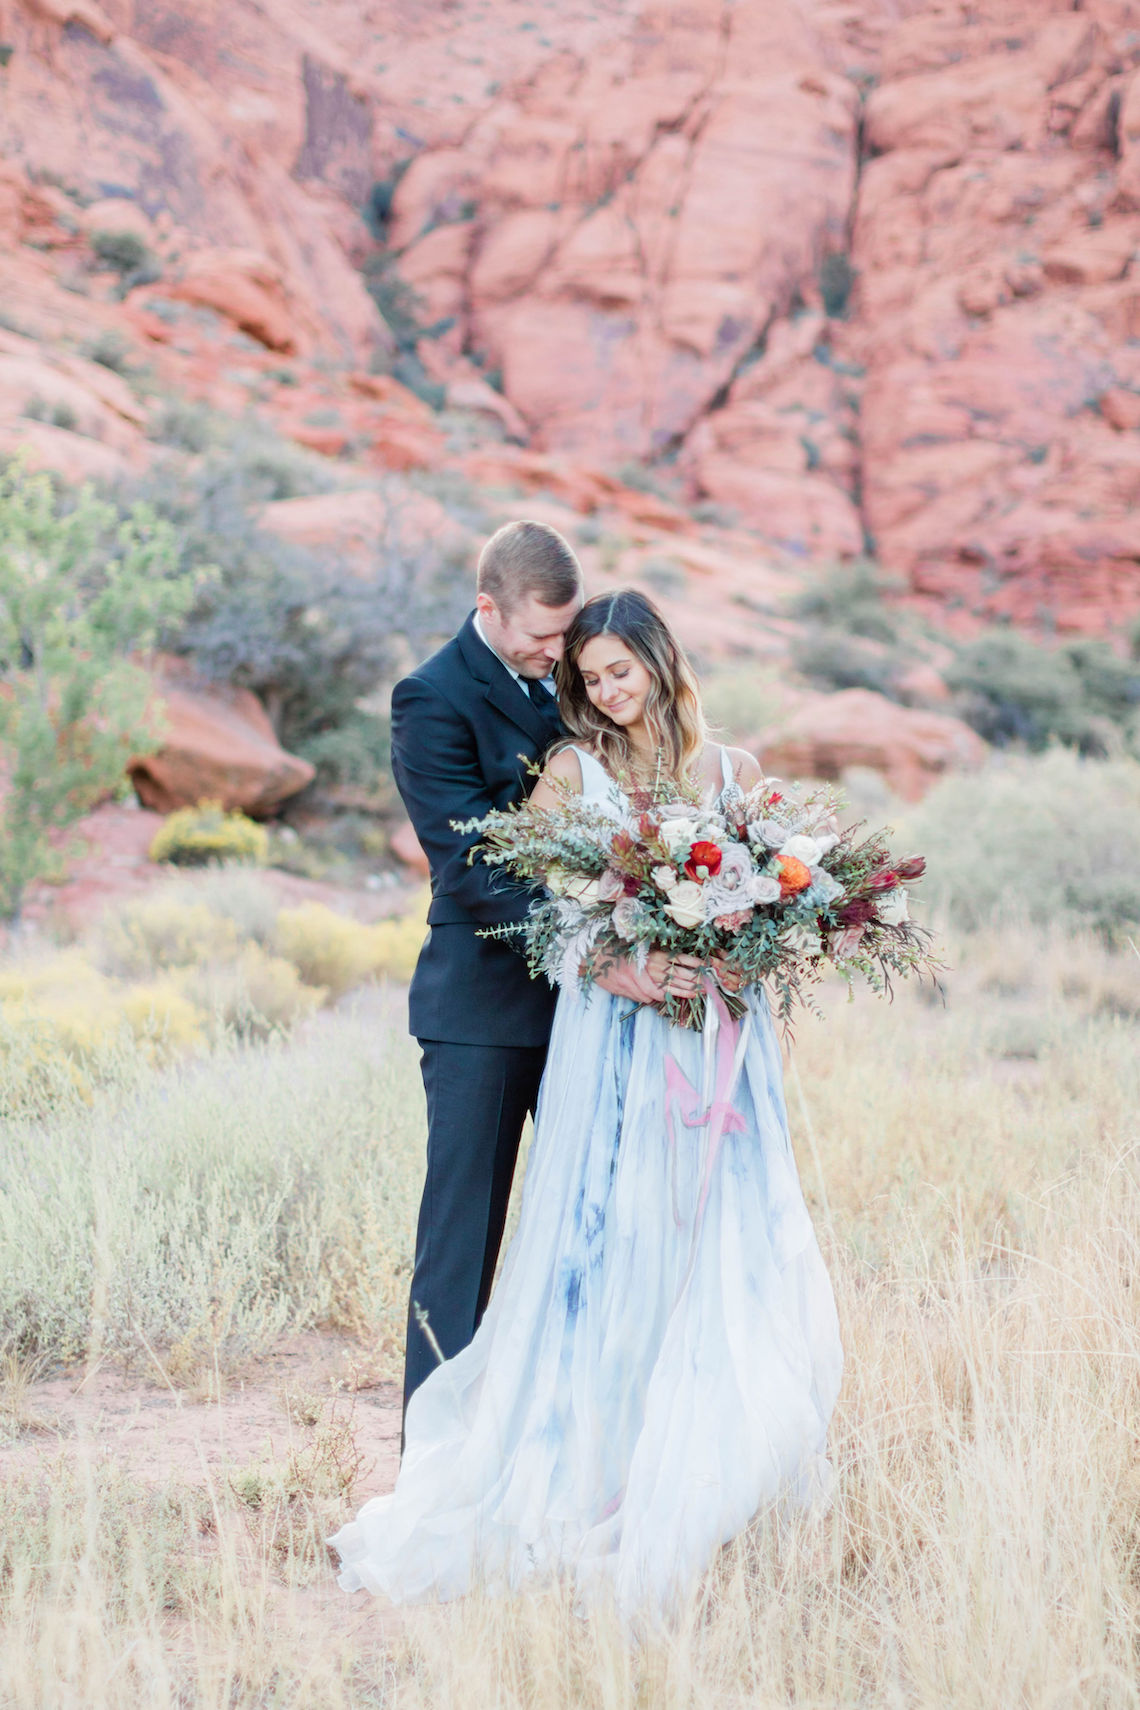 Red Rock Desert Romance With A Whimsical Blue Leanne Marshall Wedding Dress – Elizabeth M Photography 35